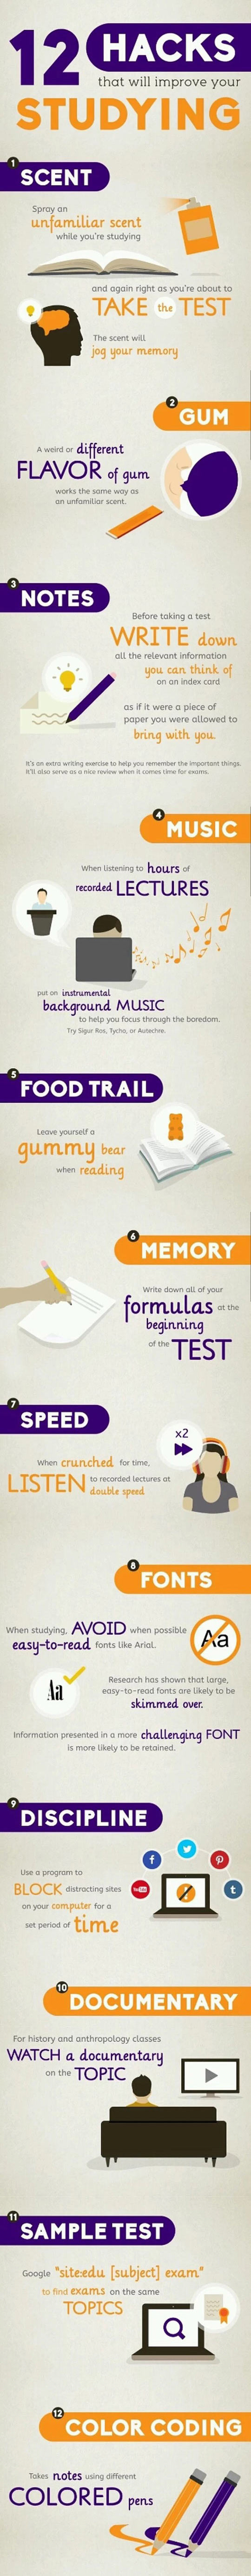 How To Improve Your Studying